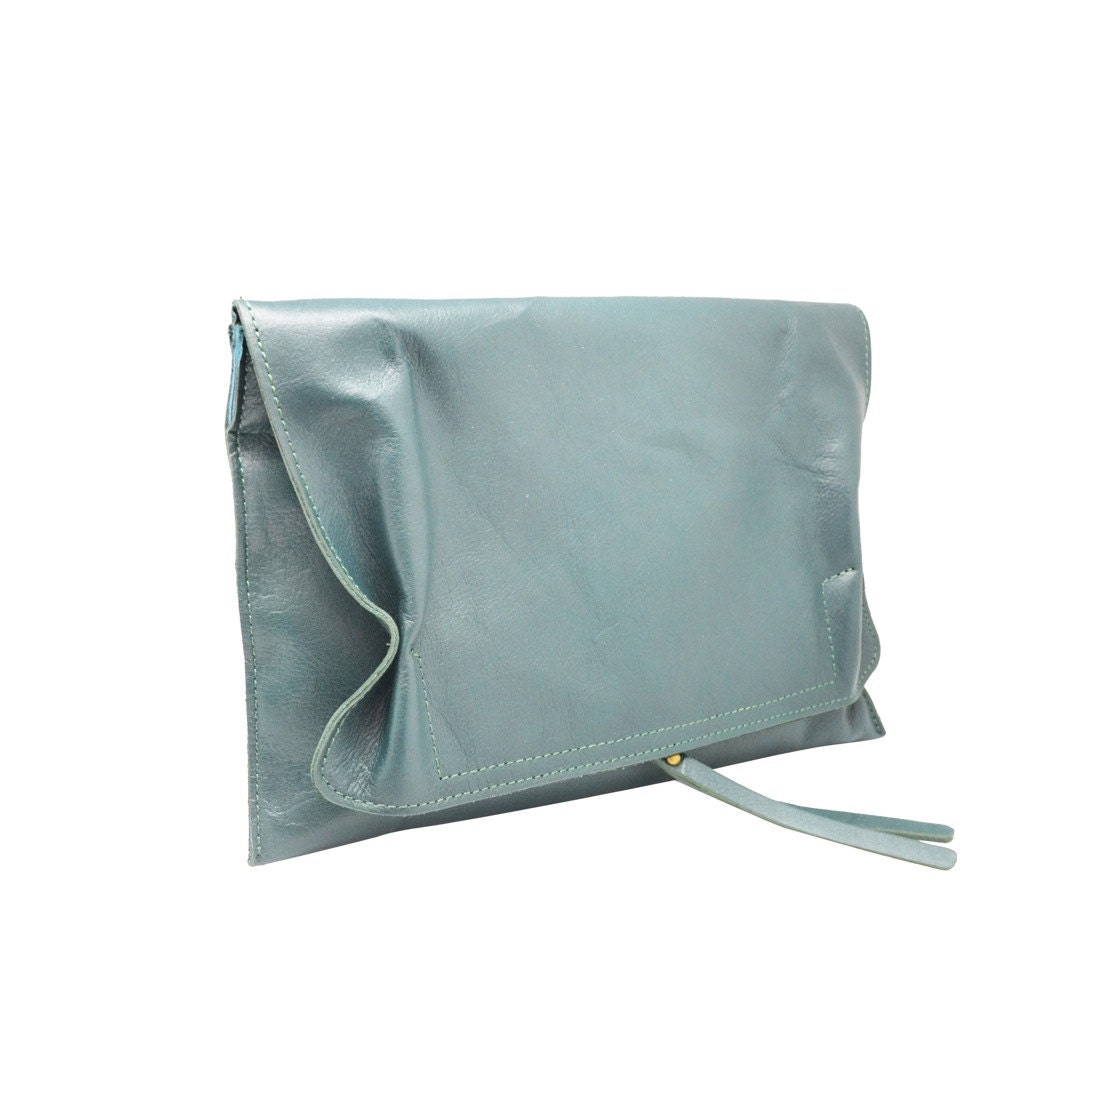 f2c7c7e7c61b3 LOREN Italian Envelop clutch mini bag smooth soft leather, evening clutch  mini bag, Italian bag adjustable shoulder strap wrist wallet purse